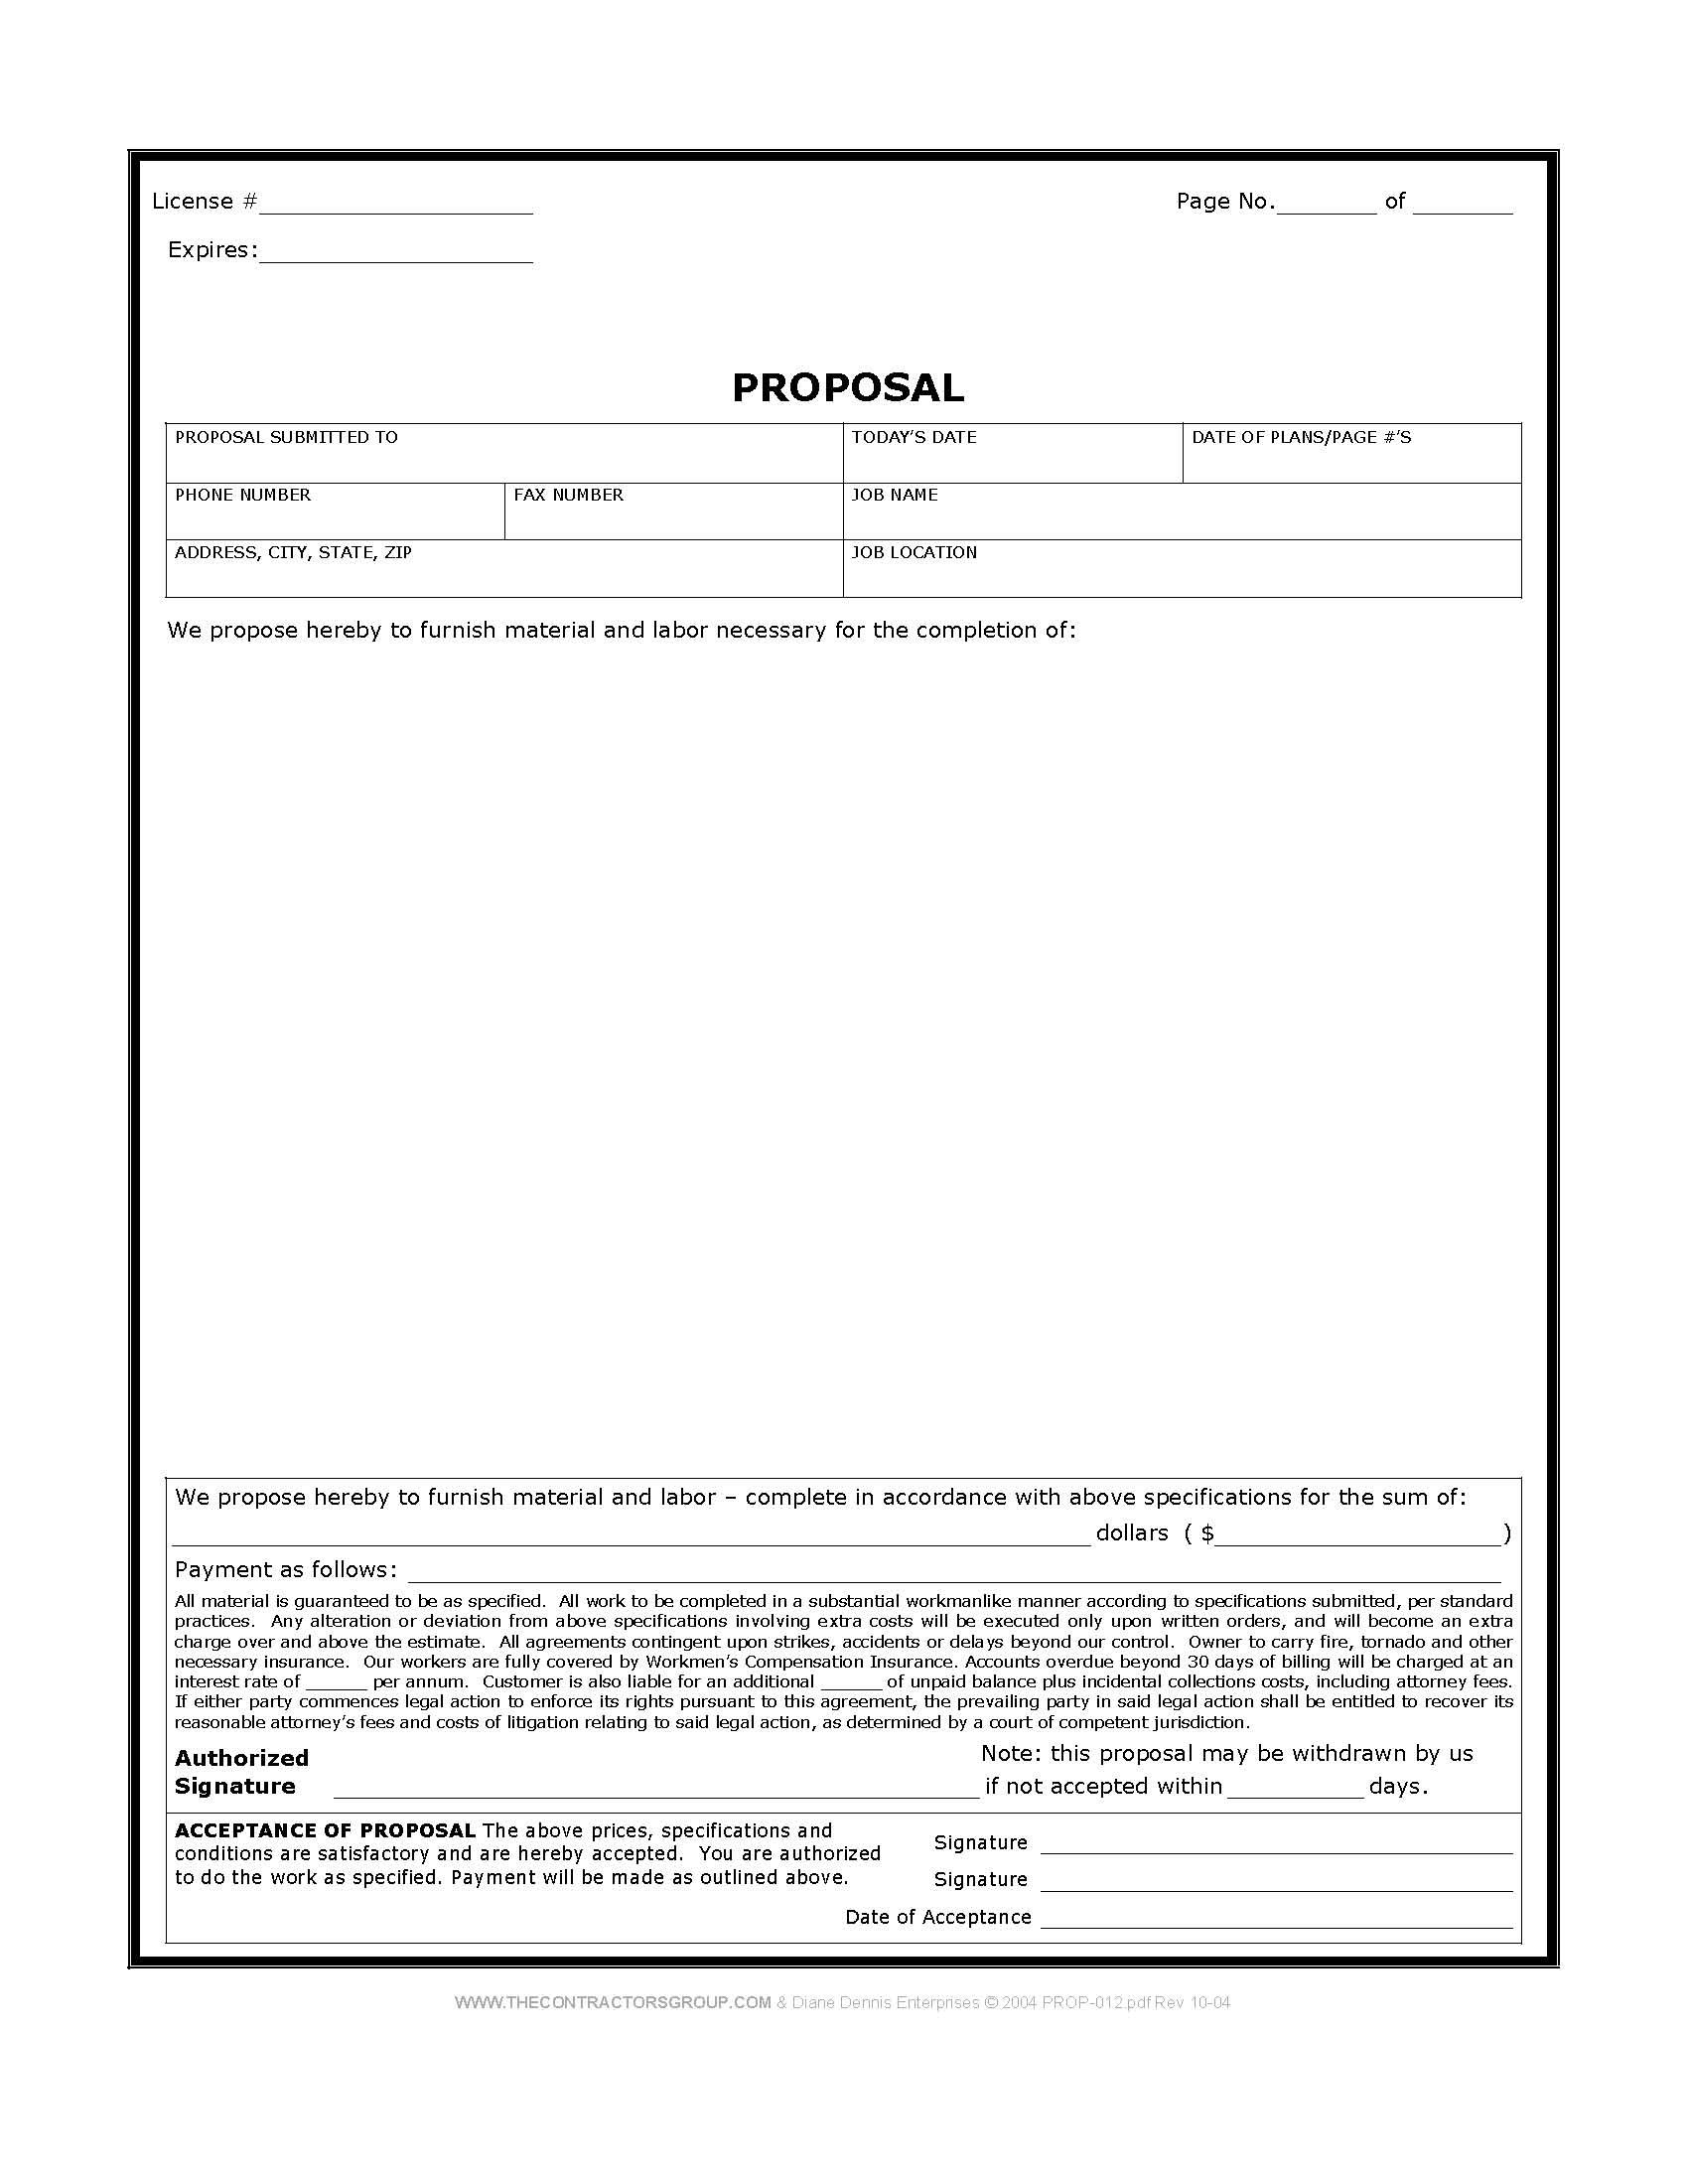 Proposal Template   Fill Online, Printable, Fillable, Blank